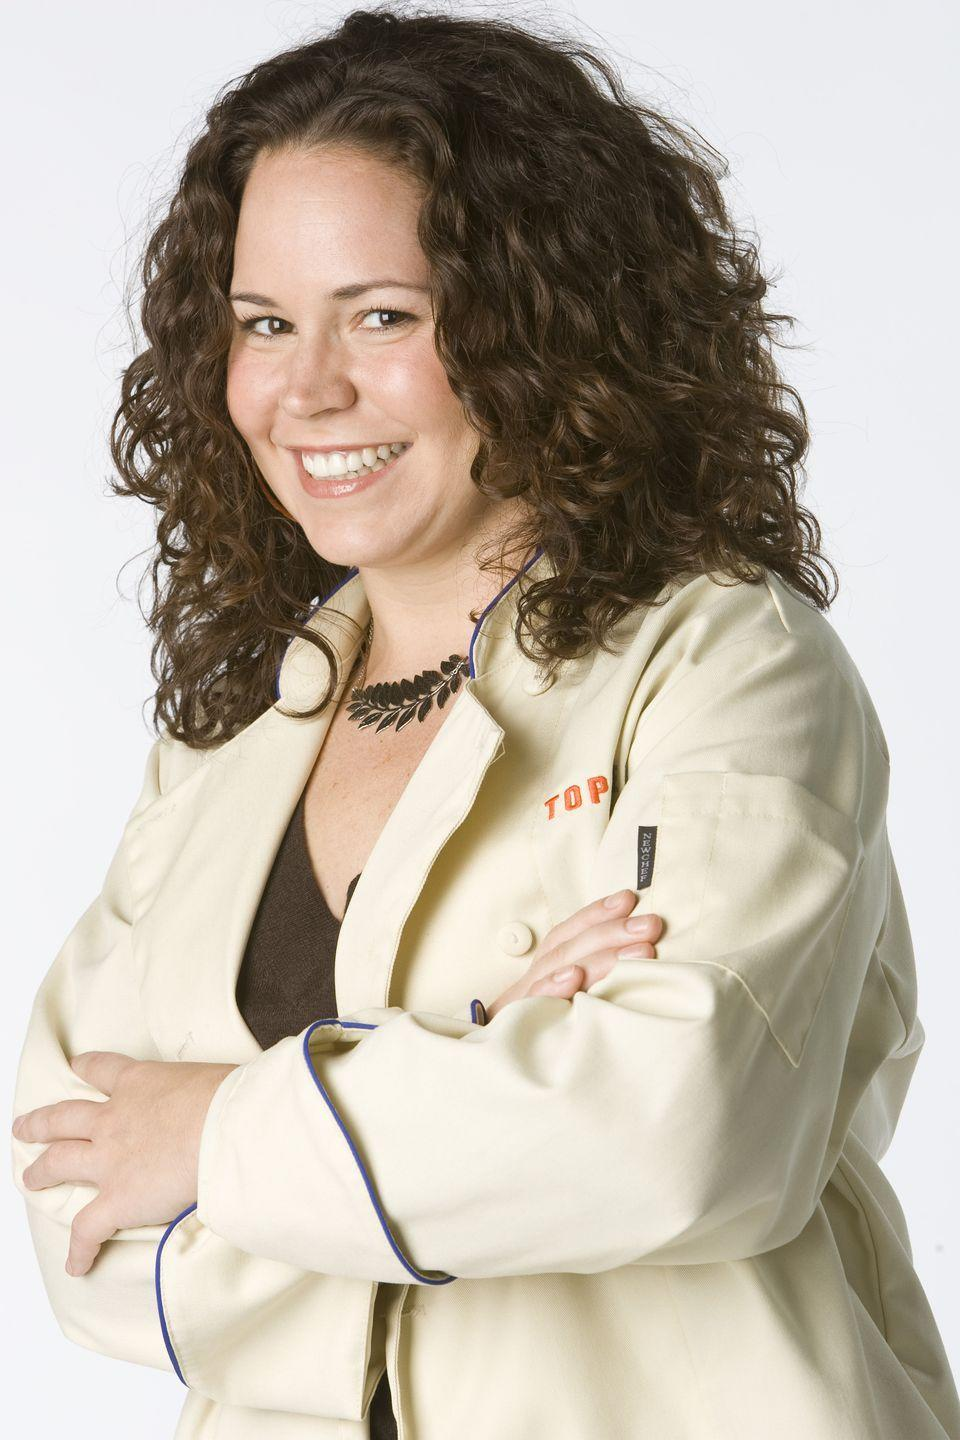 <p>Stephanie Izard opened her first restaurant Scylla at the age of 27. After closing it down in 2007, she appeared on season four of <em>Top Chef</em> where she claimed the title of being the first woman to win the cooking show. </p>